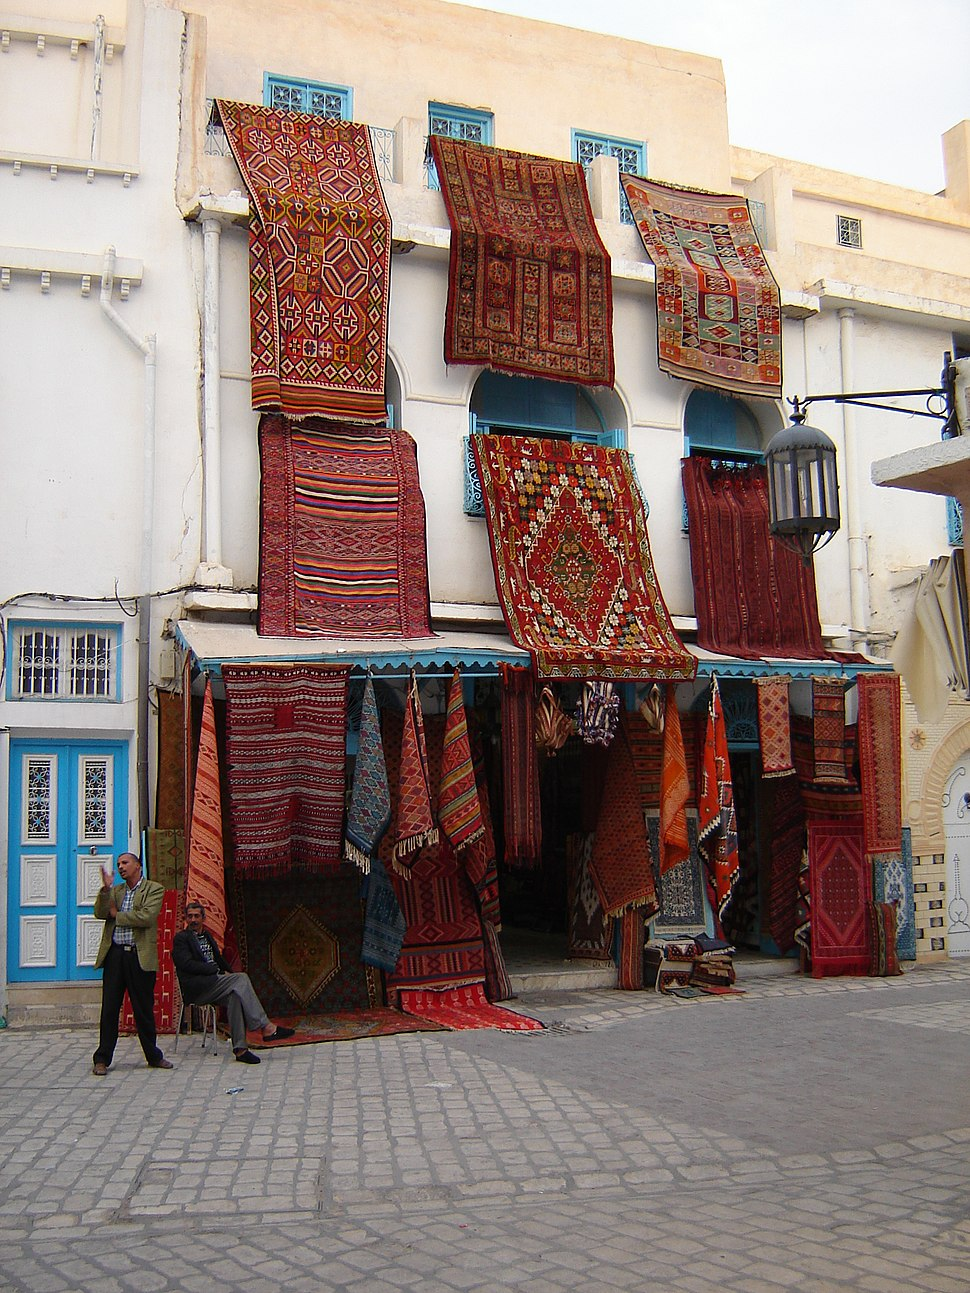 Carpet shop in Kairouan